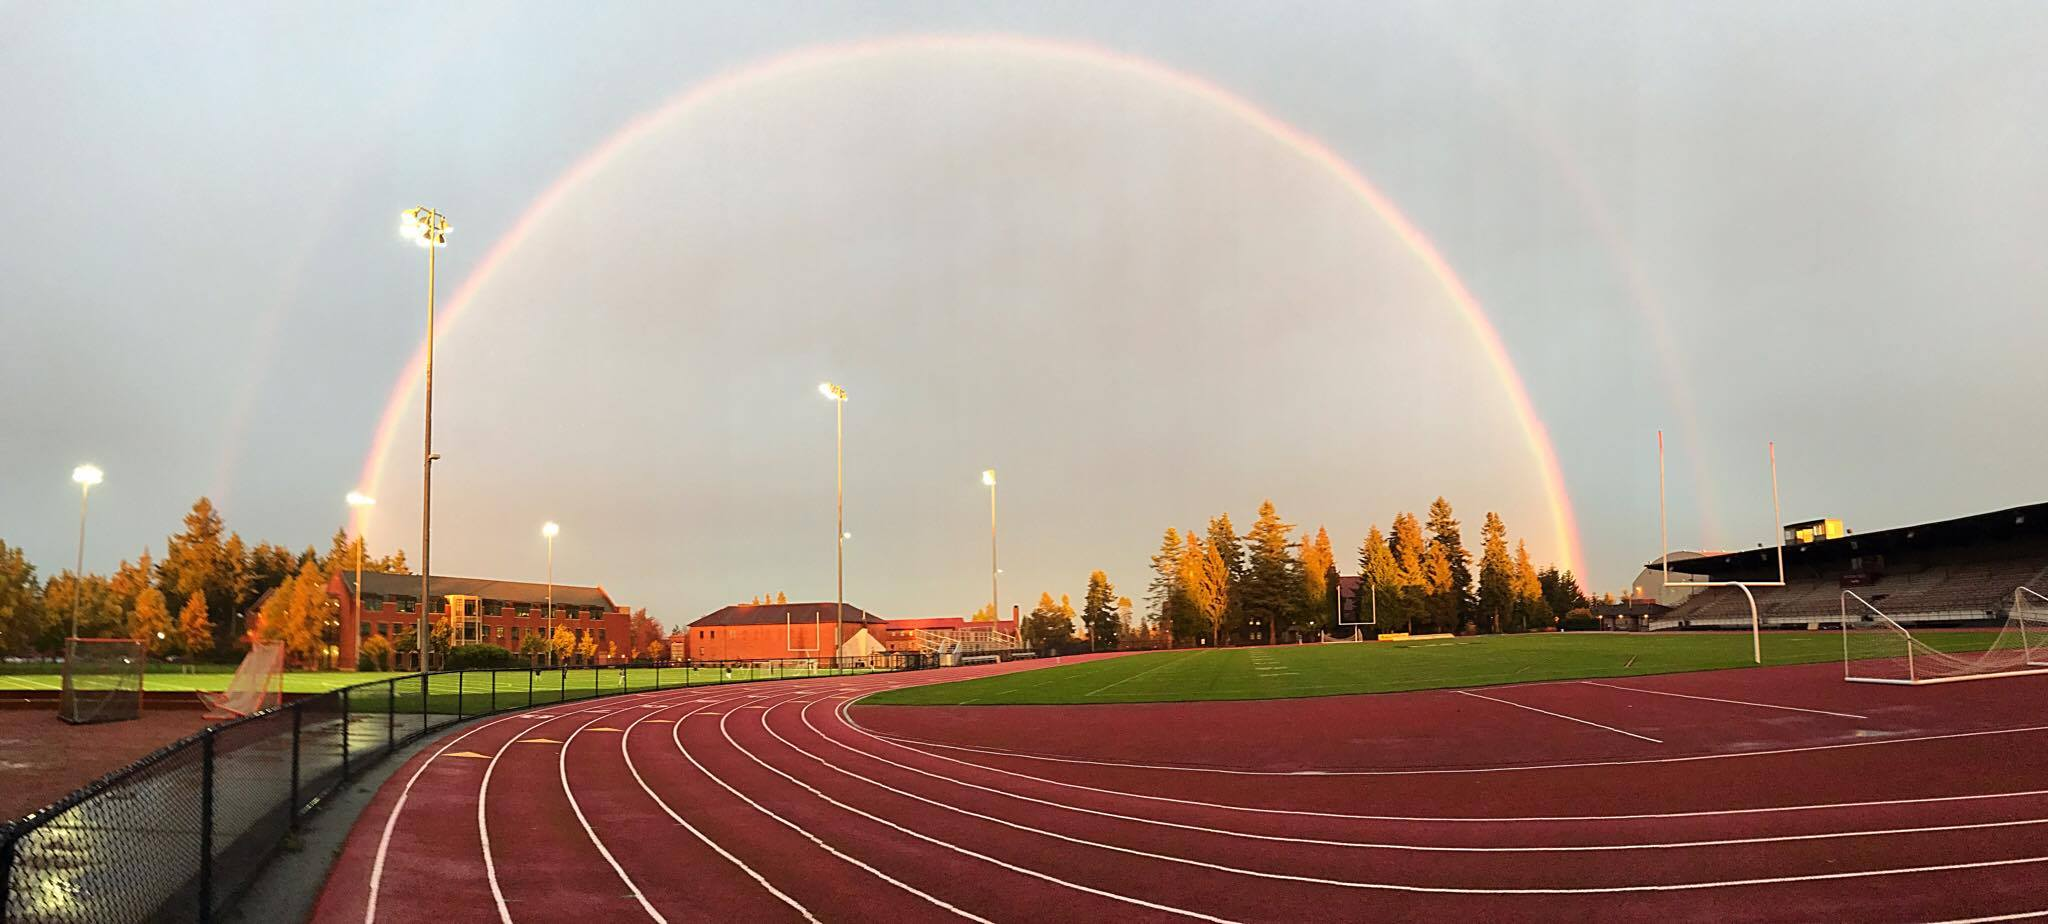 puget sound track field with a rainbow